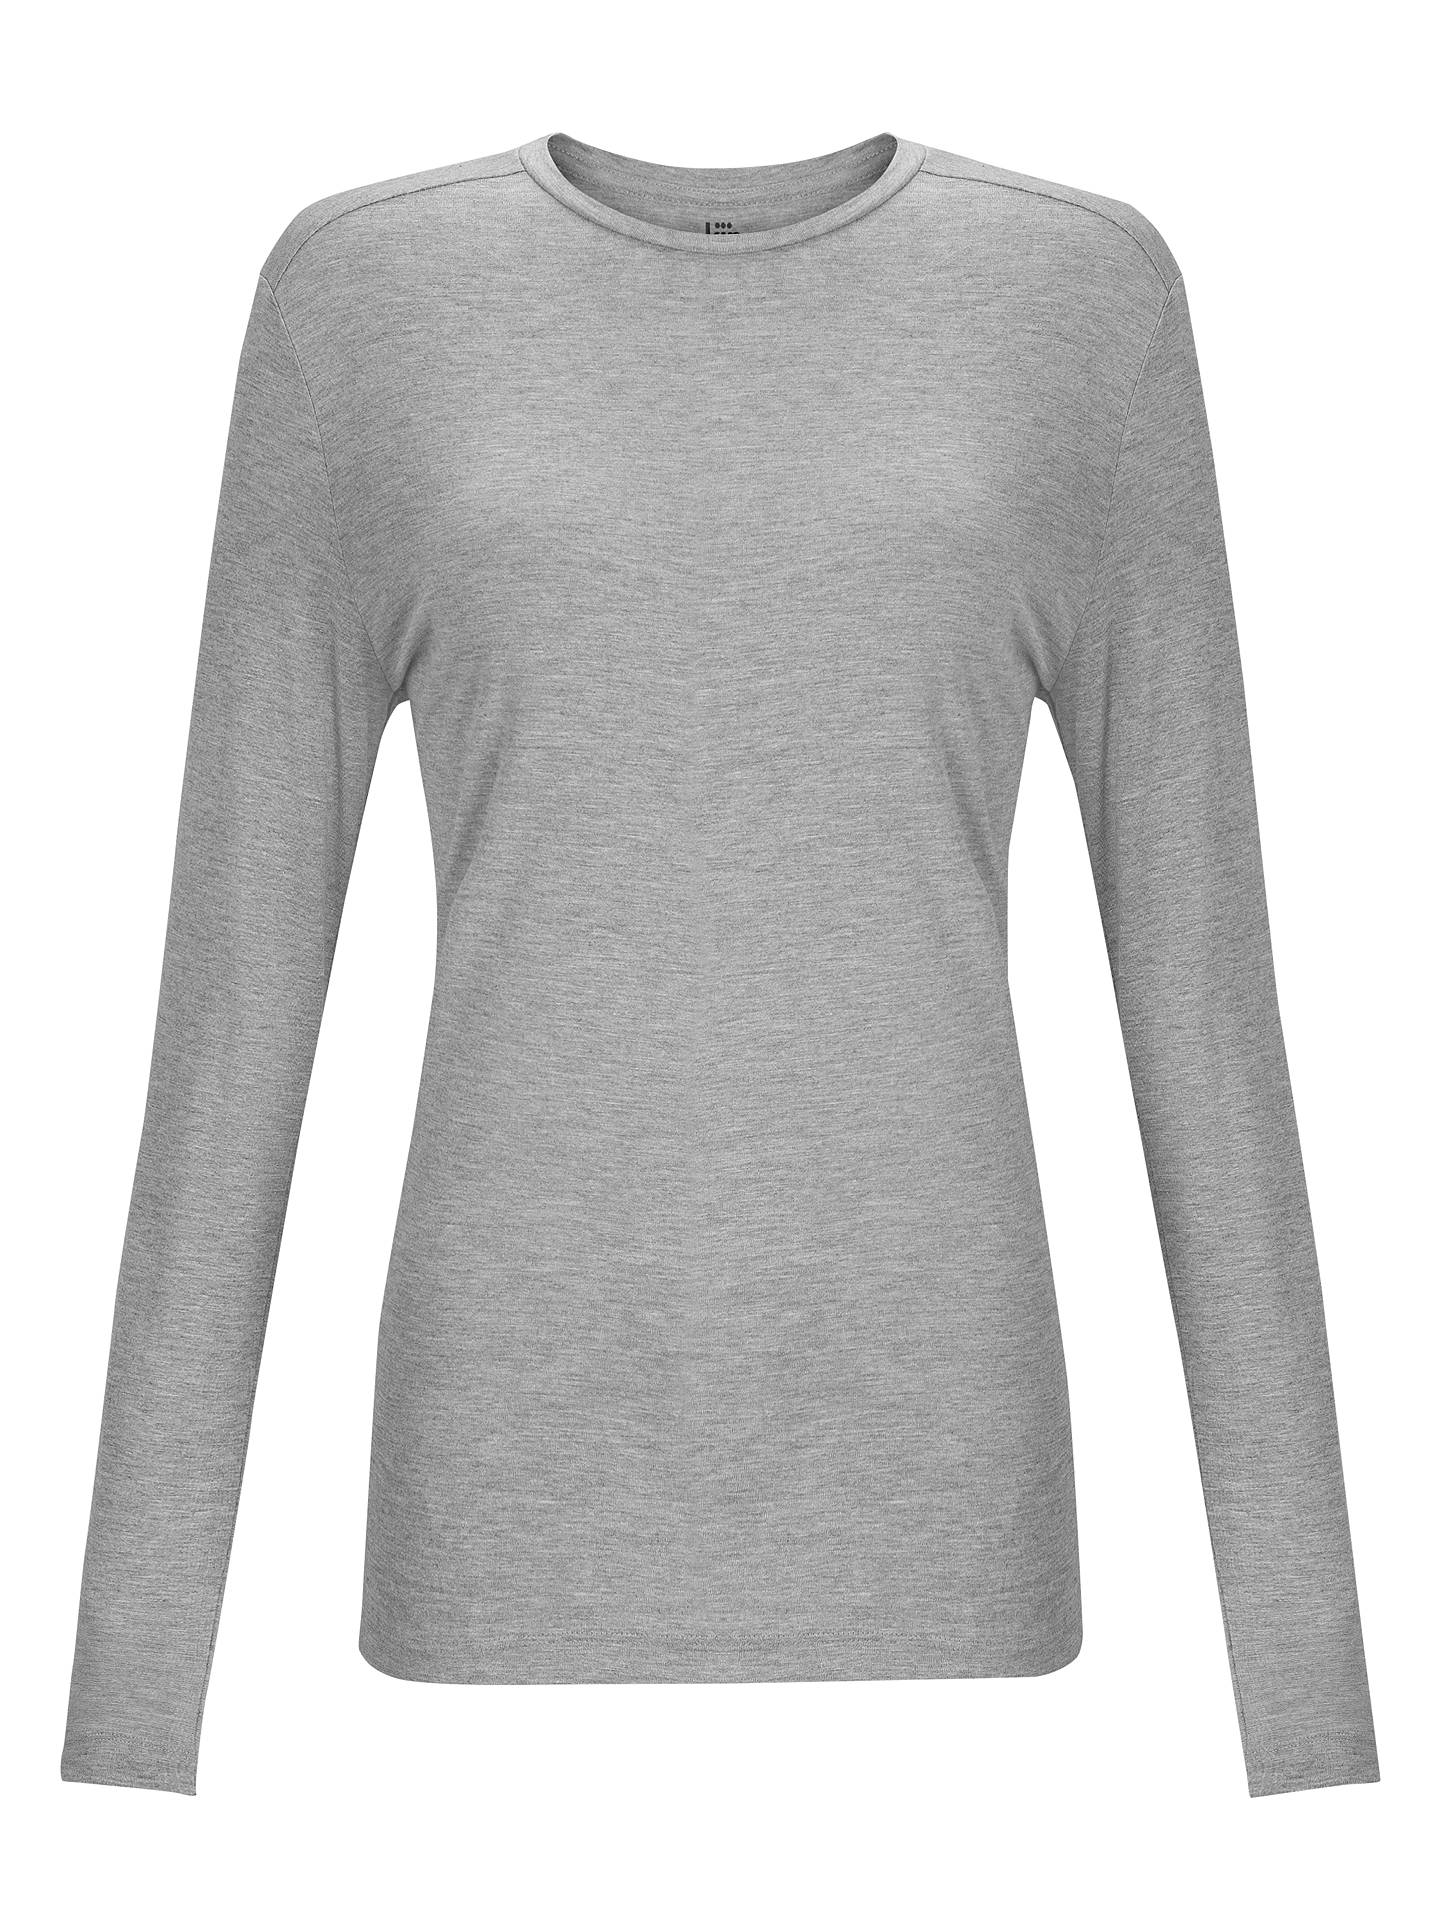 Buy Kin by John Lewis Long Sleeve T-Shirt, Grey Marl, 8 Online at johnlewis.com